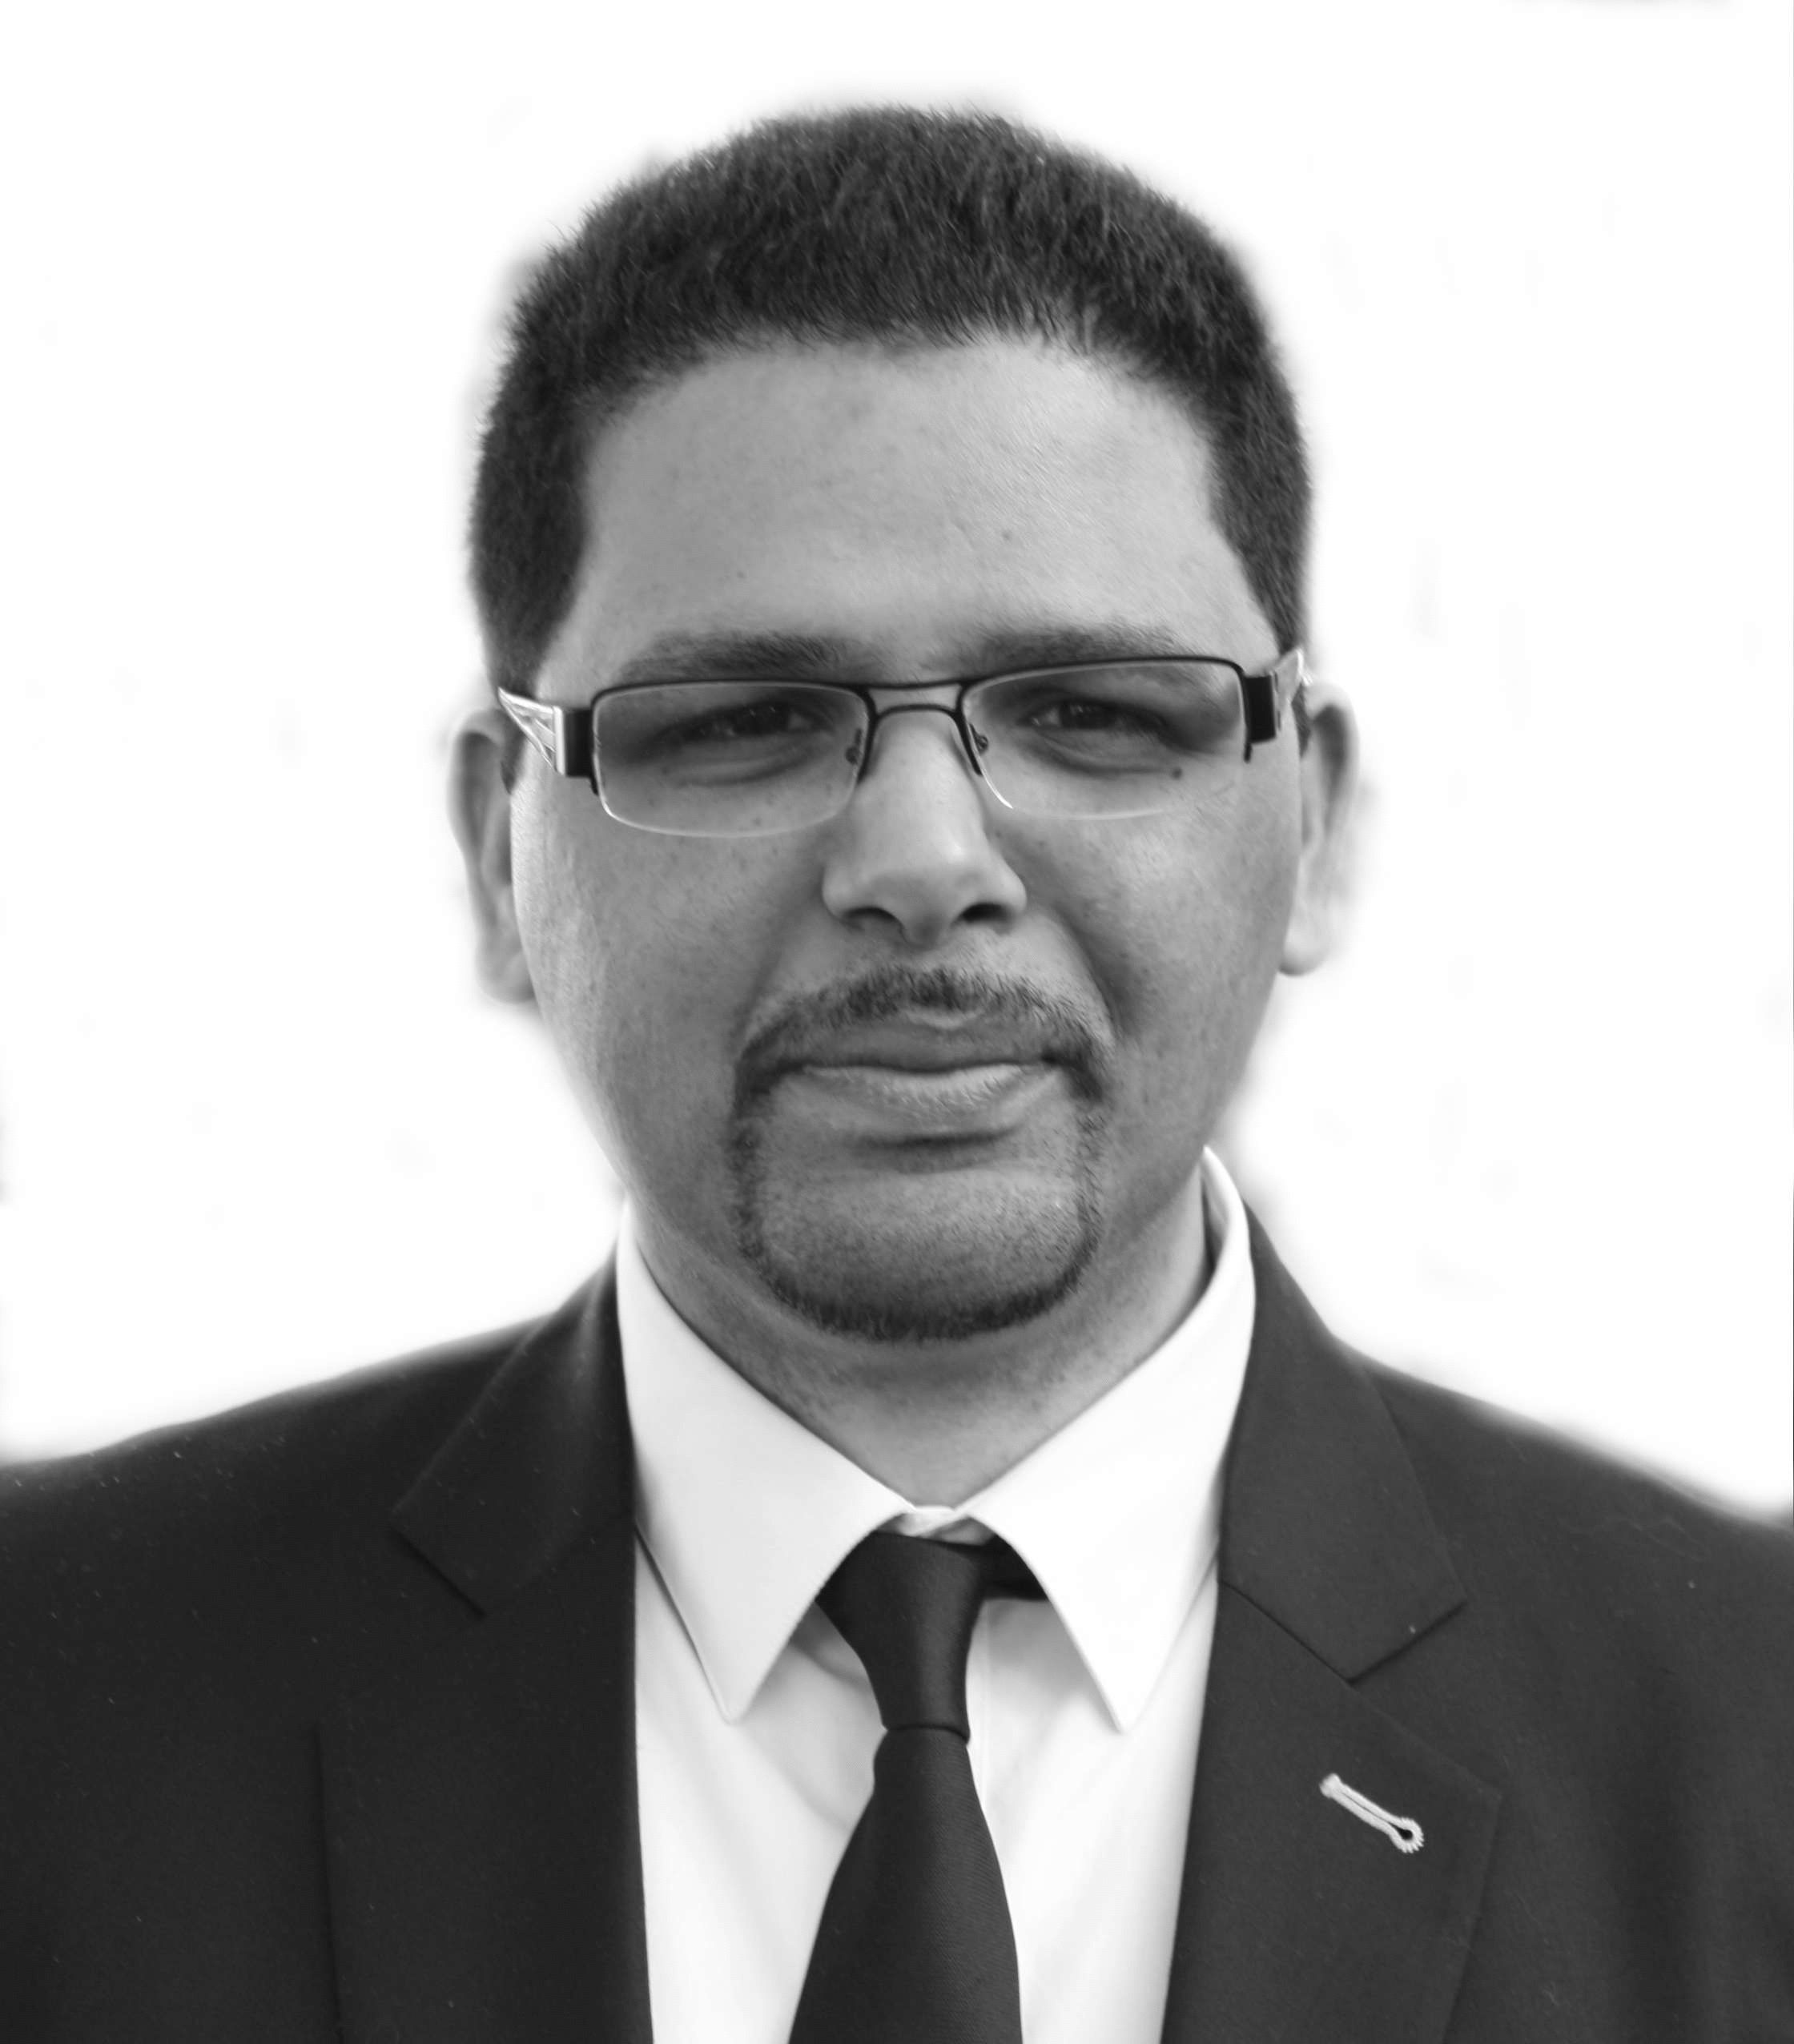 Yassine Ayari Headshot